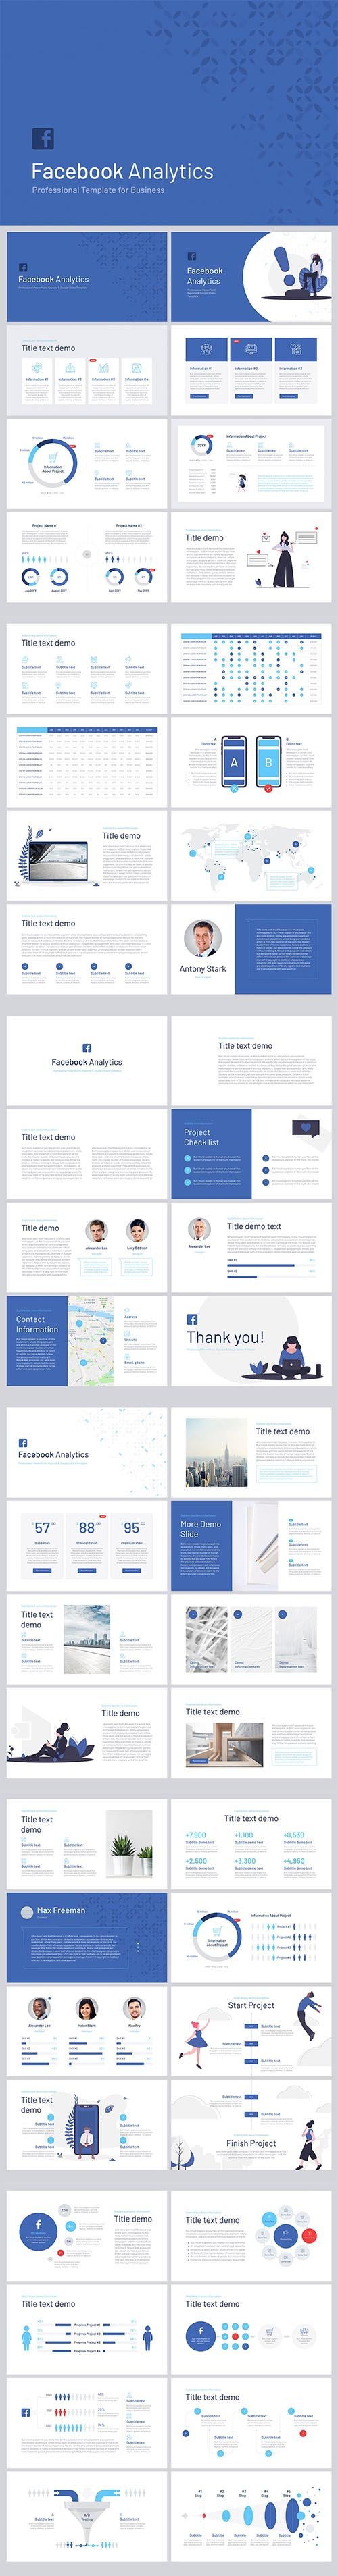 Facebook Analytics for Powerpoint, Keynote and Google Slides Templates